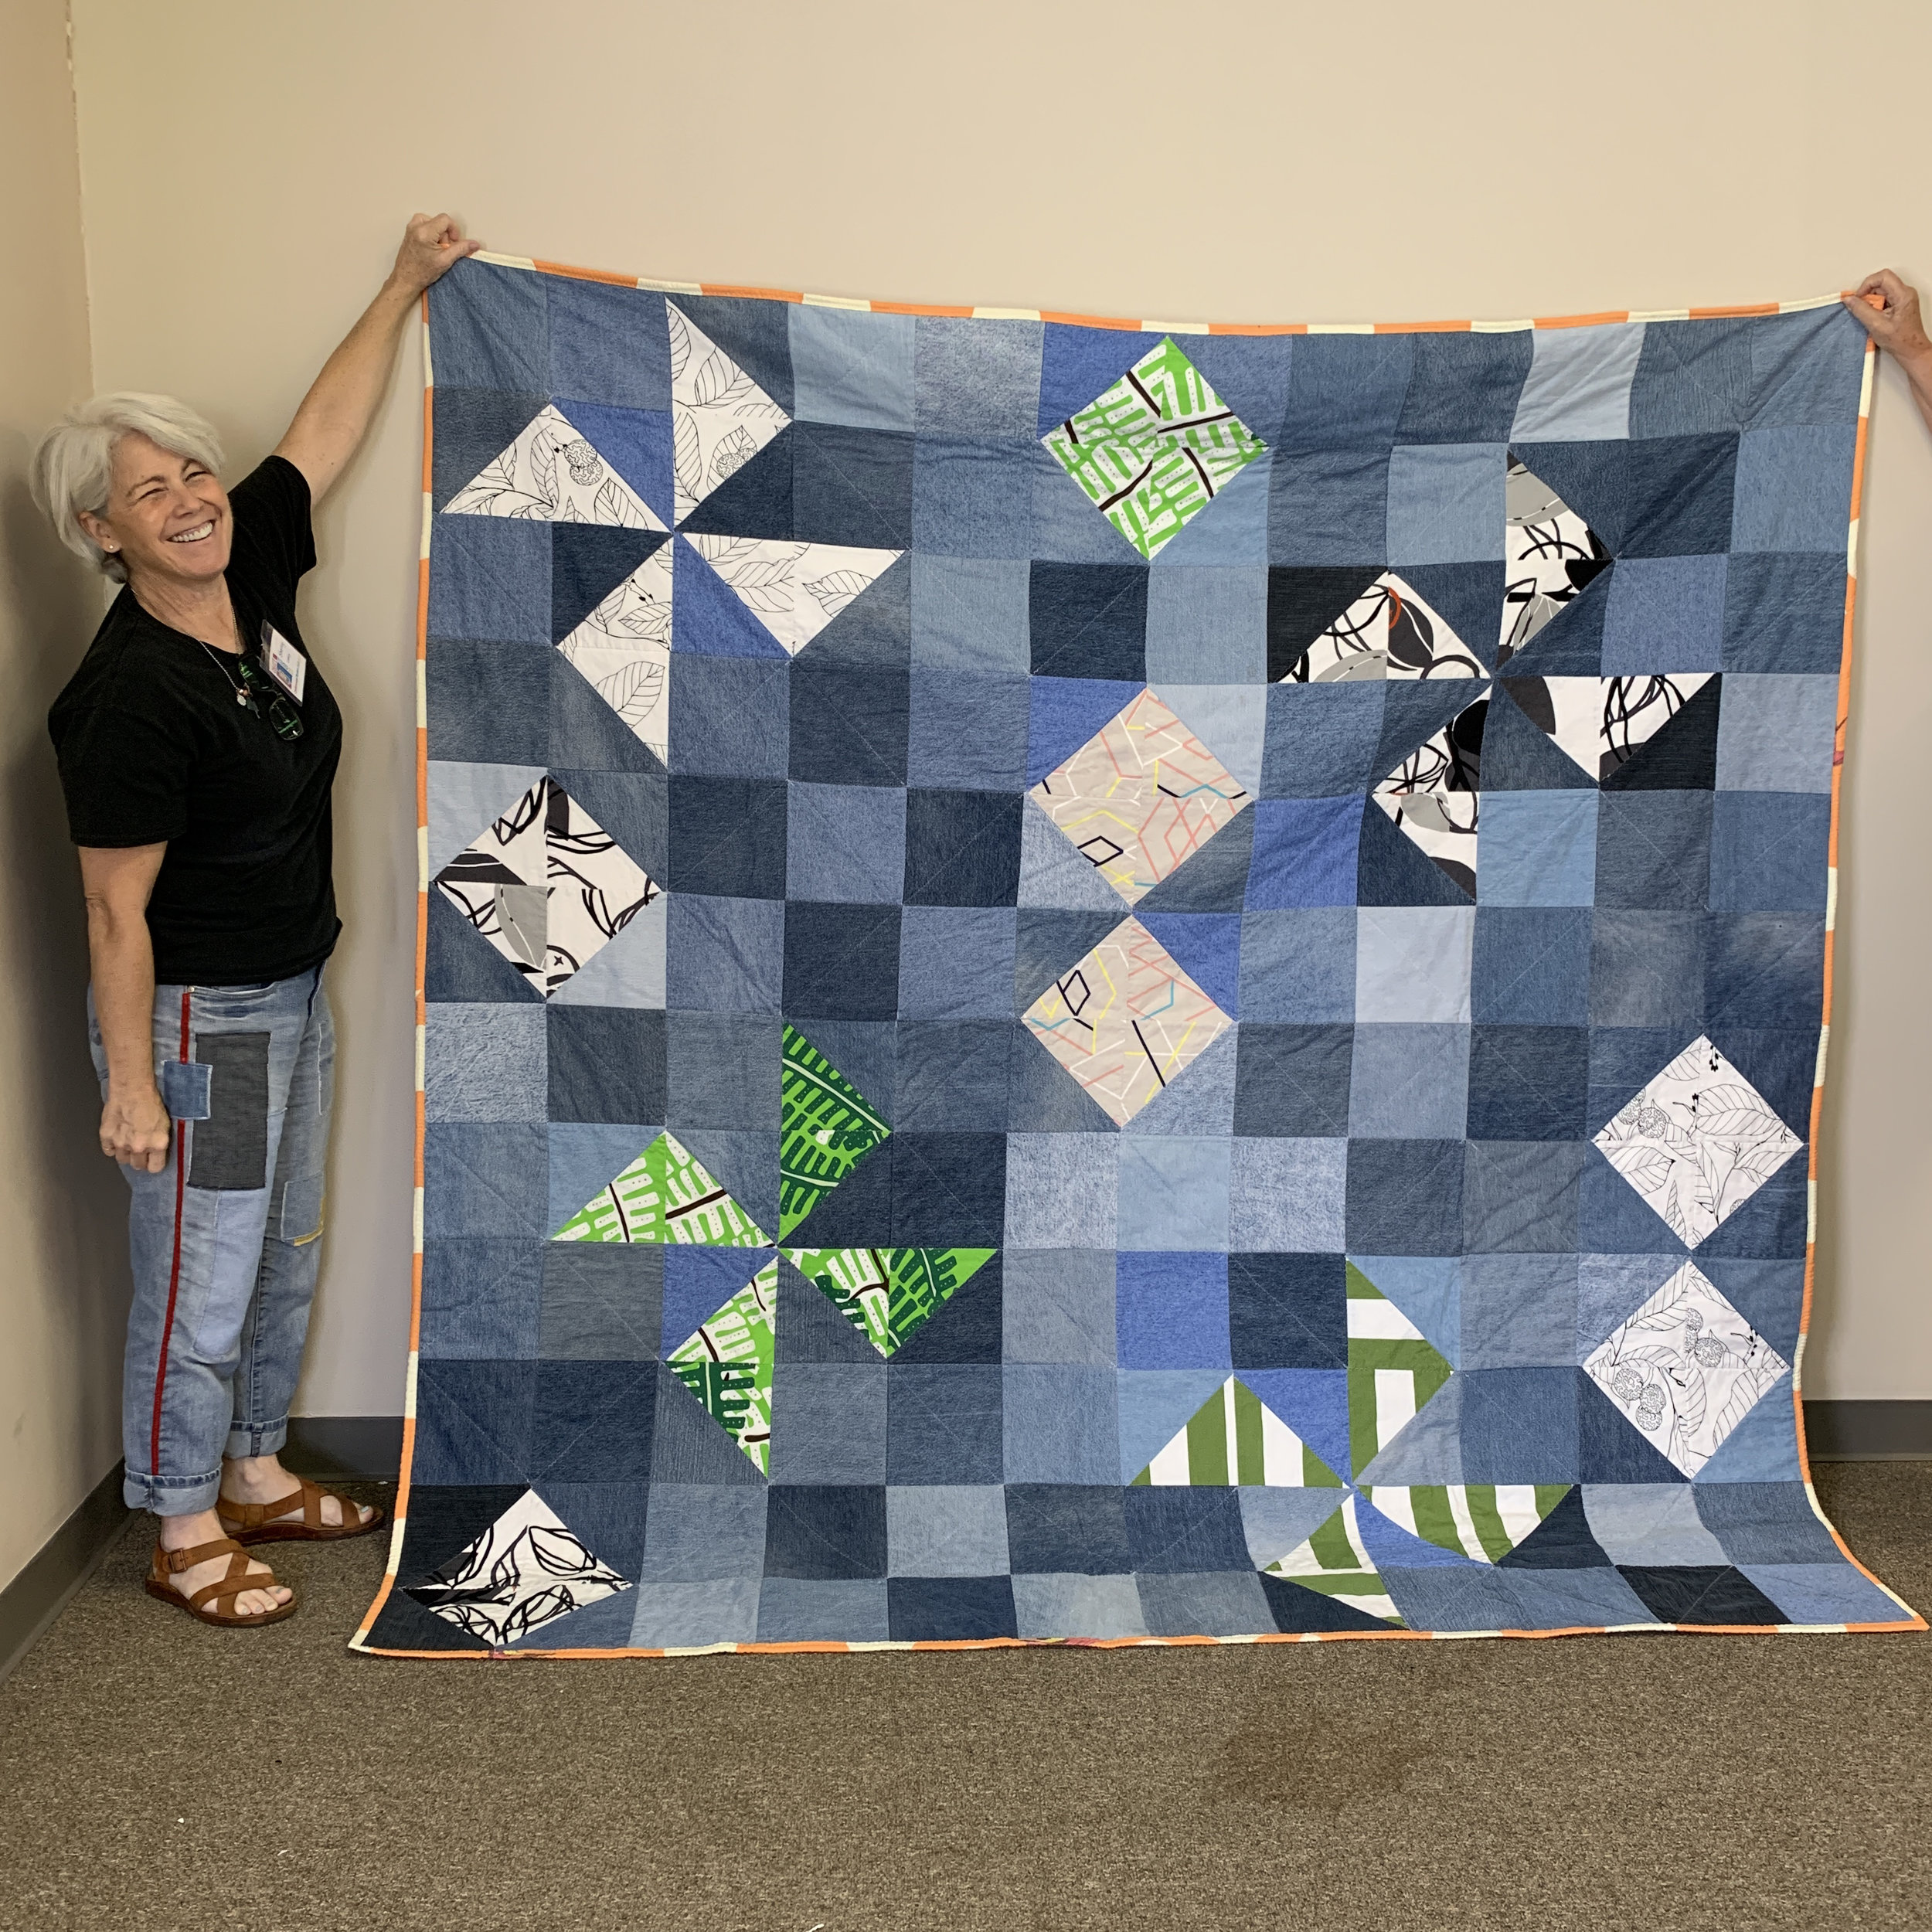 Denim quilt by Sherry Leary